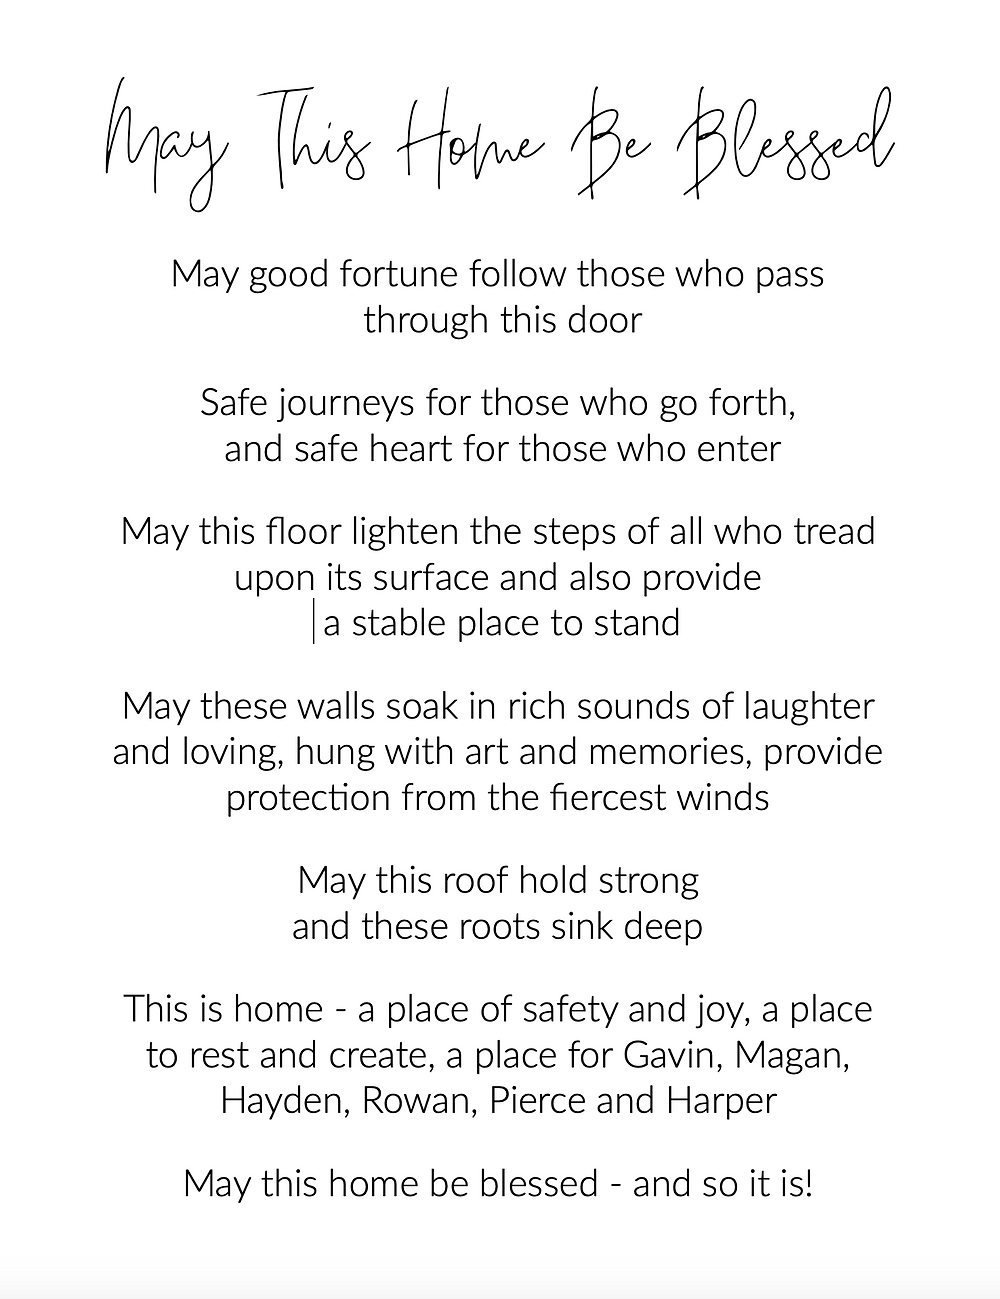 Home blessing poem